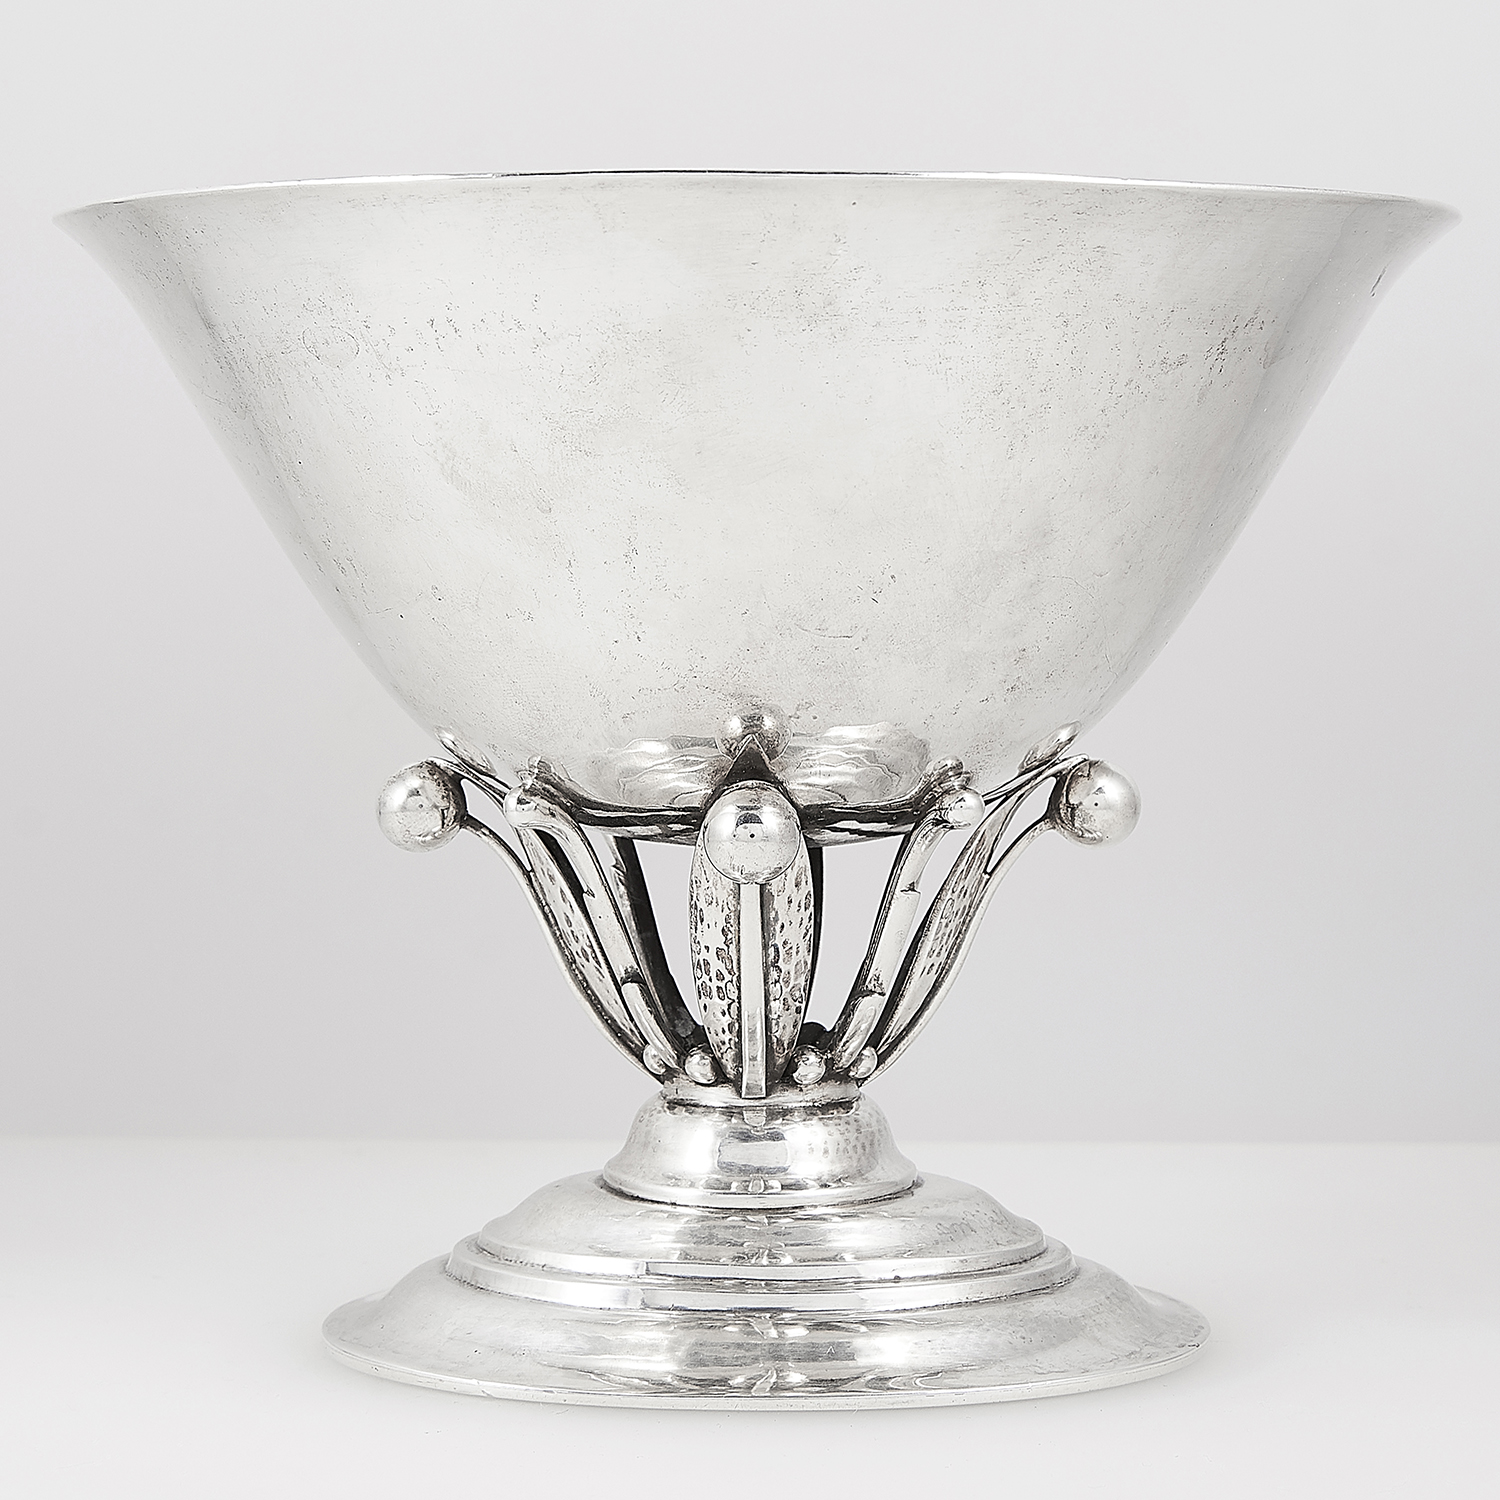 ANTIQUE DANISH STERLING SILVER BOWL, GEORG JENSEN, CIRCA 1927-30 designed by Johan Rohde (1856-1935)